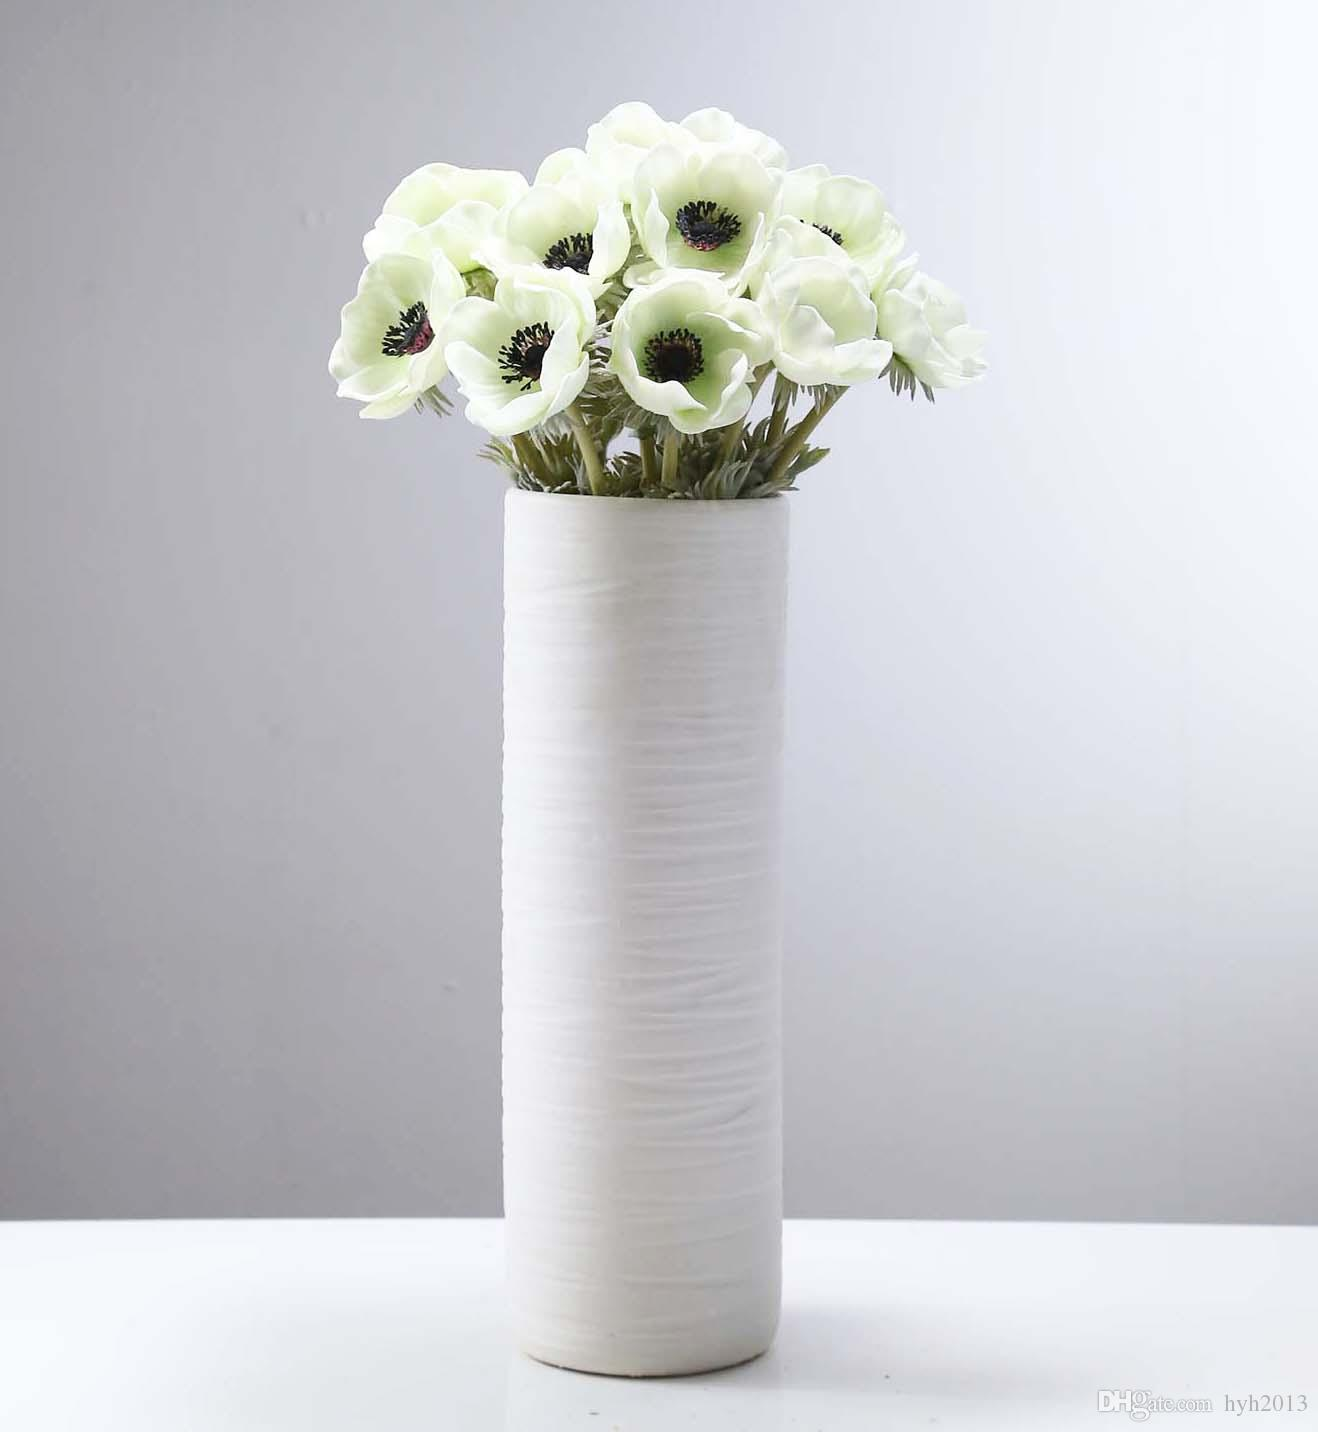 2018 5 heads mini artificial anemone wedding bridal bouquet home 2018 5 heads mini artificial anemone wedding bridal bouquet home long stem flower grassgreen in white from hyh2013 805 dhgate izmirmasajfo